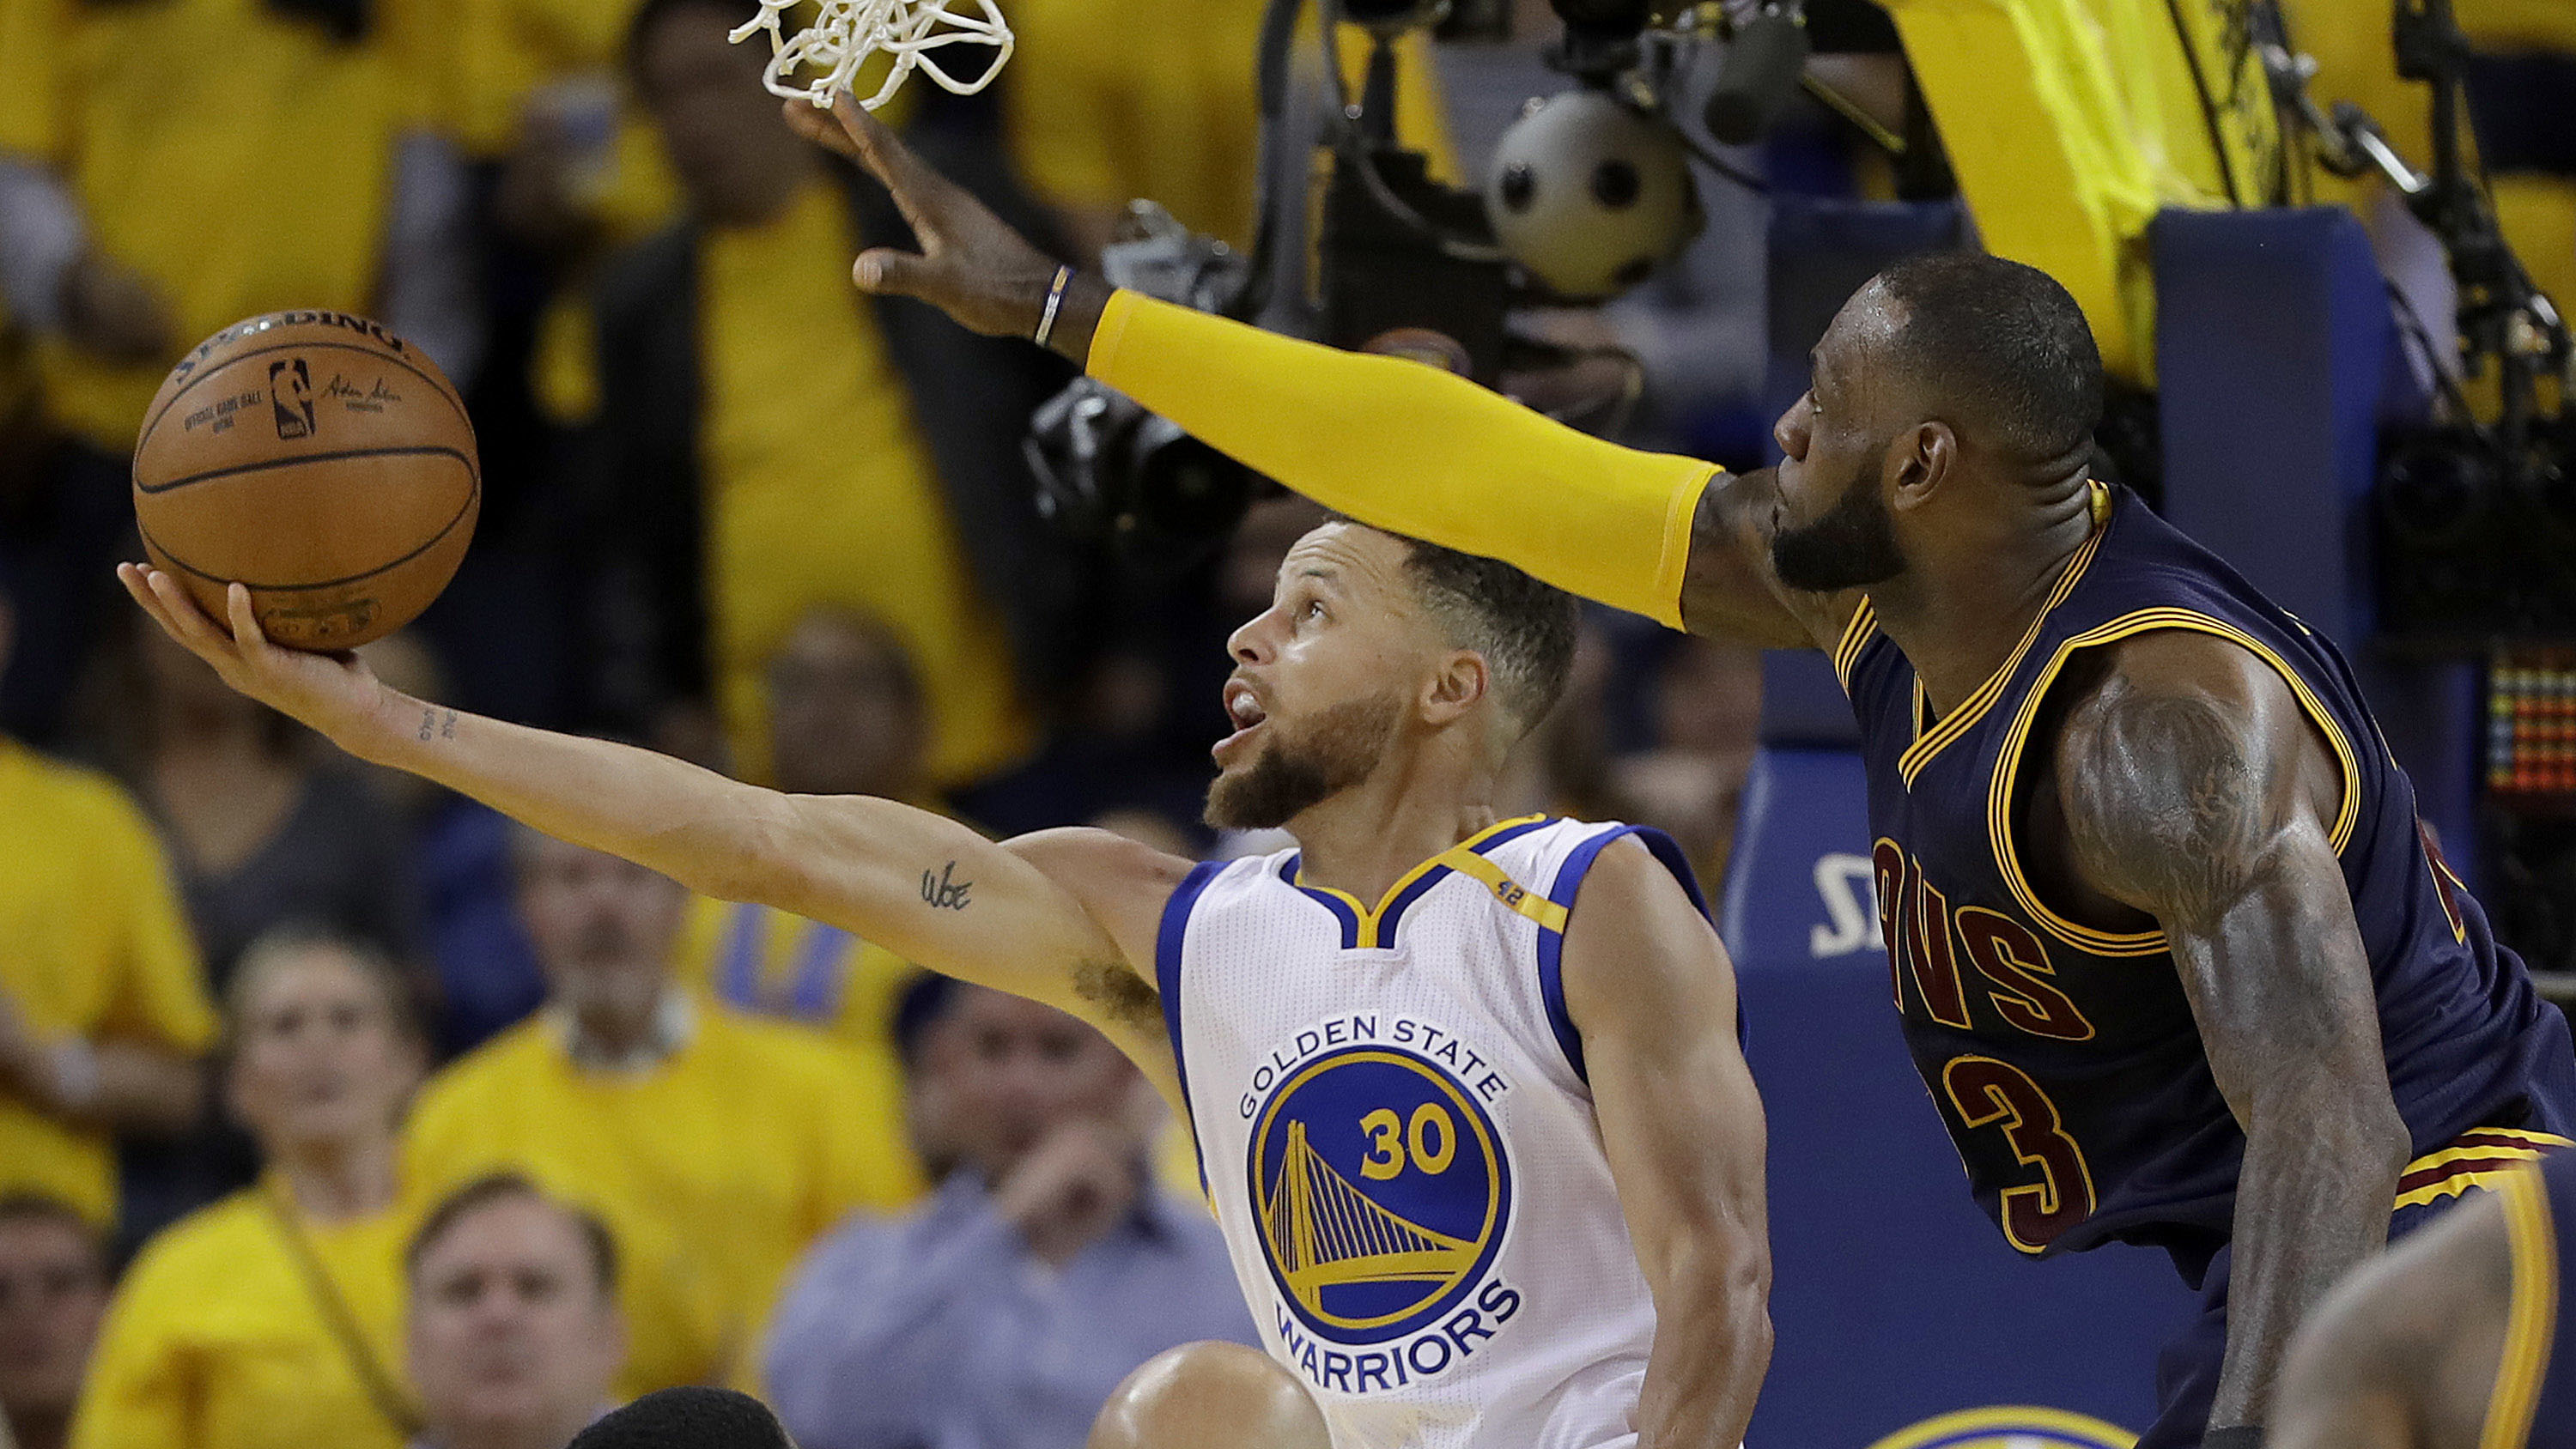 Golden State Warriors guard Stephen Curry (30) shoots against Cleveland Cavaliers forward LeBron James during the second half of Game 1 of basketball's NBA Finals in Oakland, Calif., Thursday, June 1, 2017. (AP Photo/Marcio Jose Sanchez)